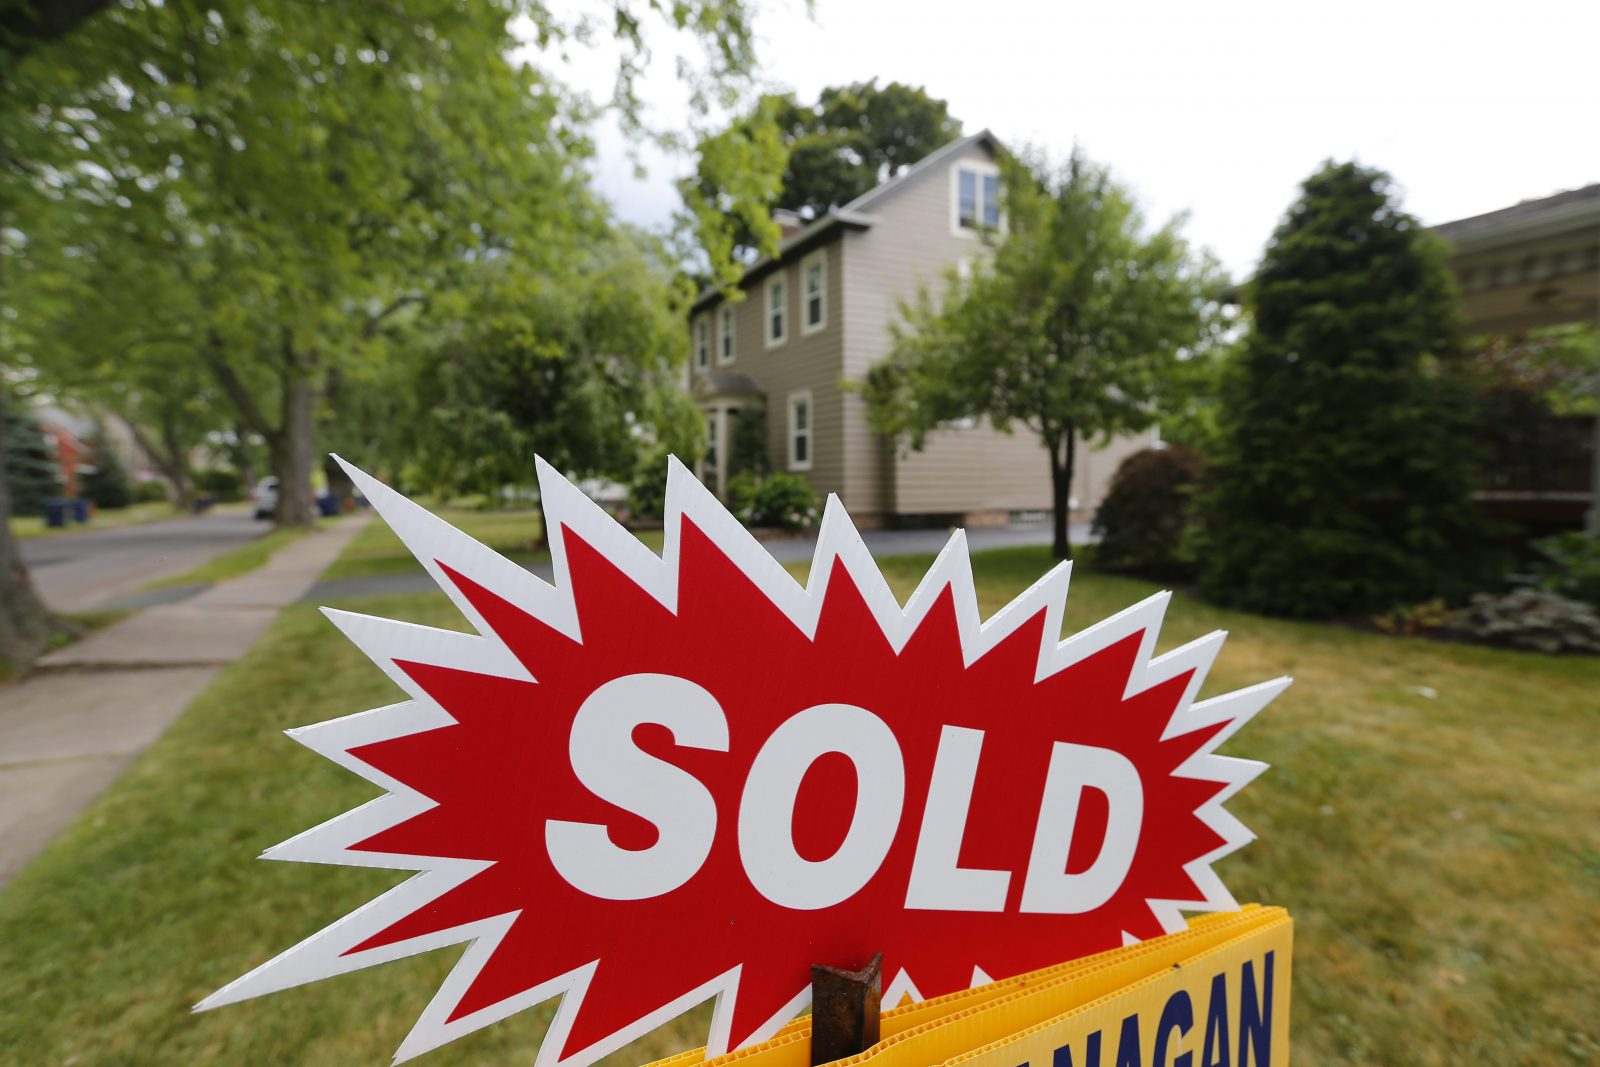 Four reasons why the local housing market remains hot